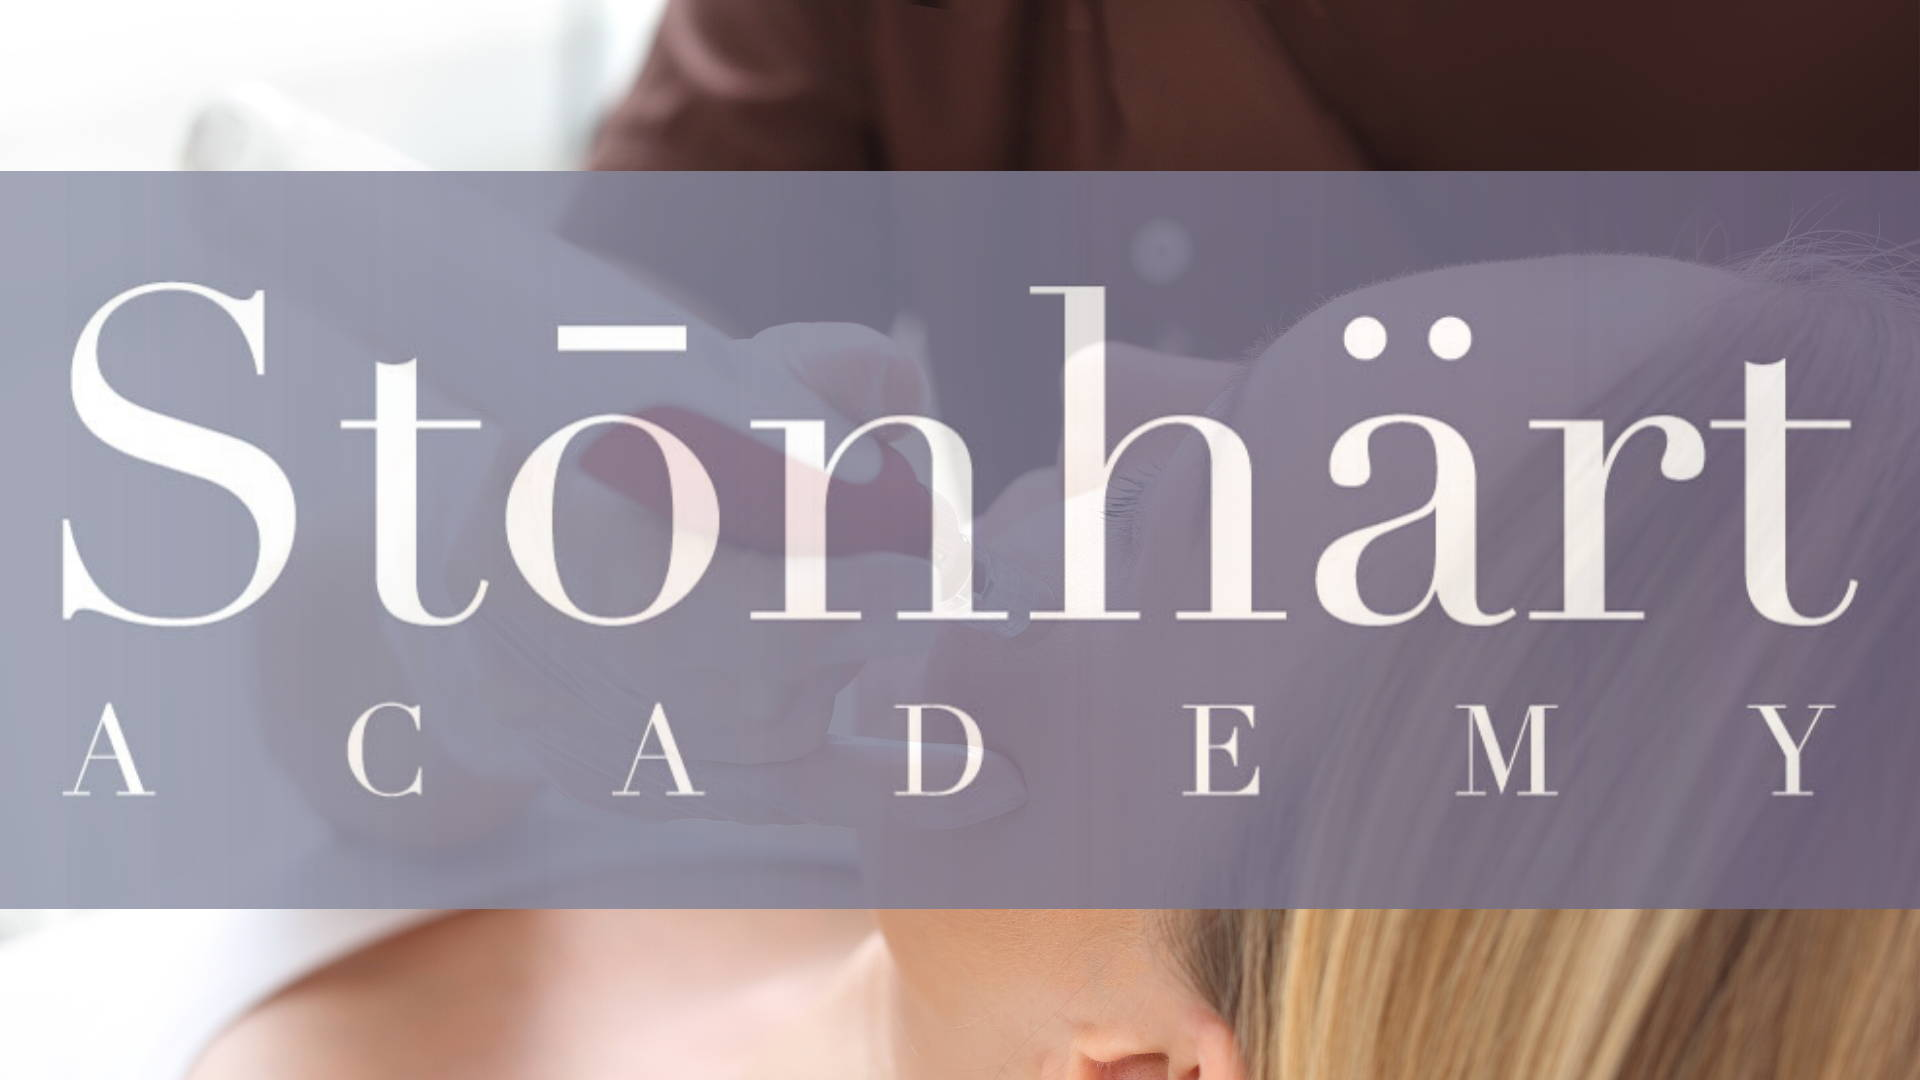 Stonhart academy offers over 20 certifications for estheticians and cosmetologists